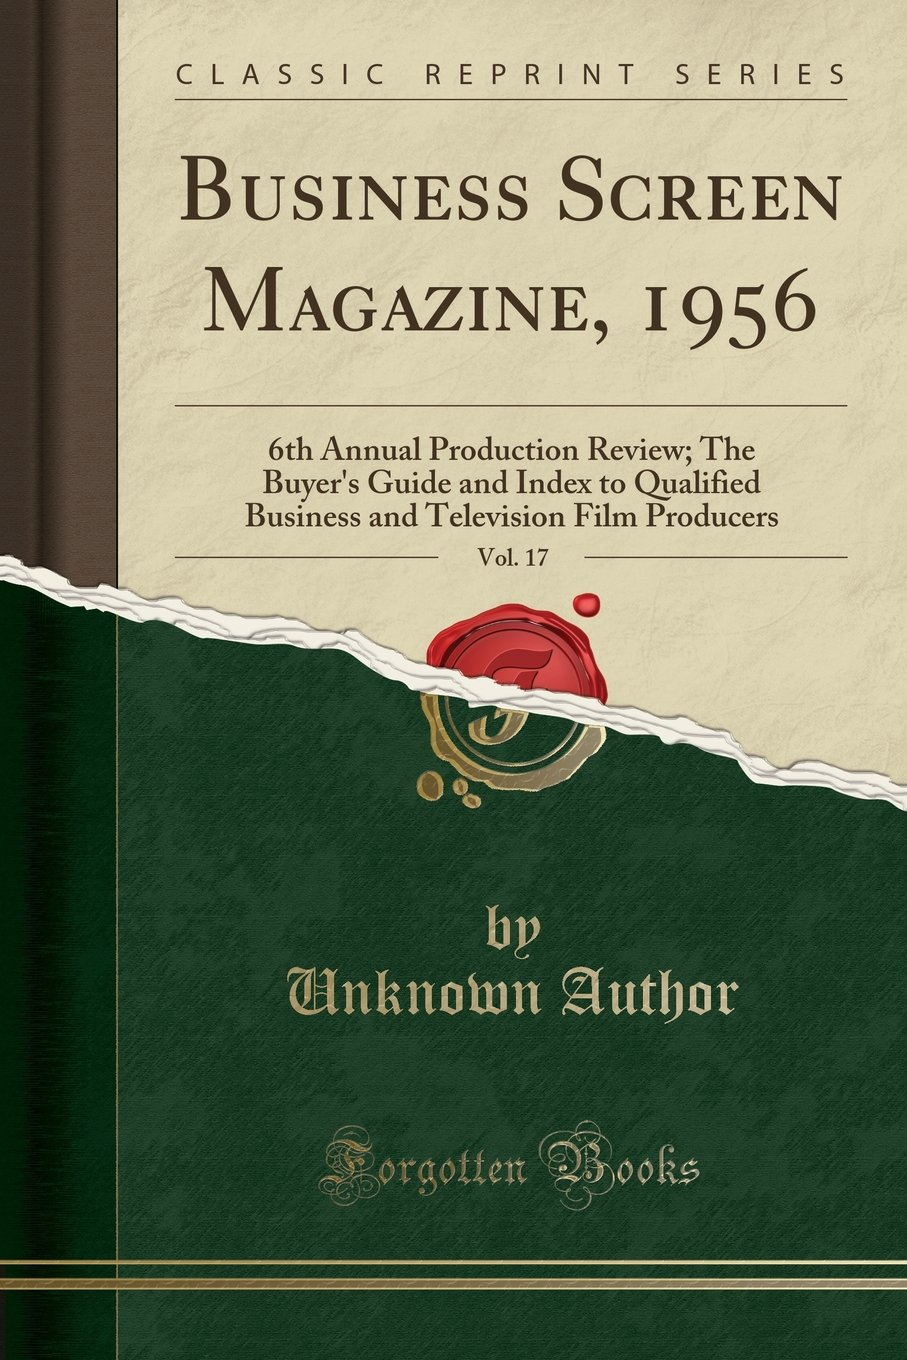 Business Screen Magazine, 1956, Vol. 17: 6th Annual Production Review; The Buyer's Guide and Index to Qualified Business and Television Film Producers (Classic Reprint) PDF